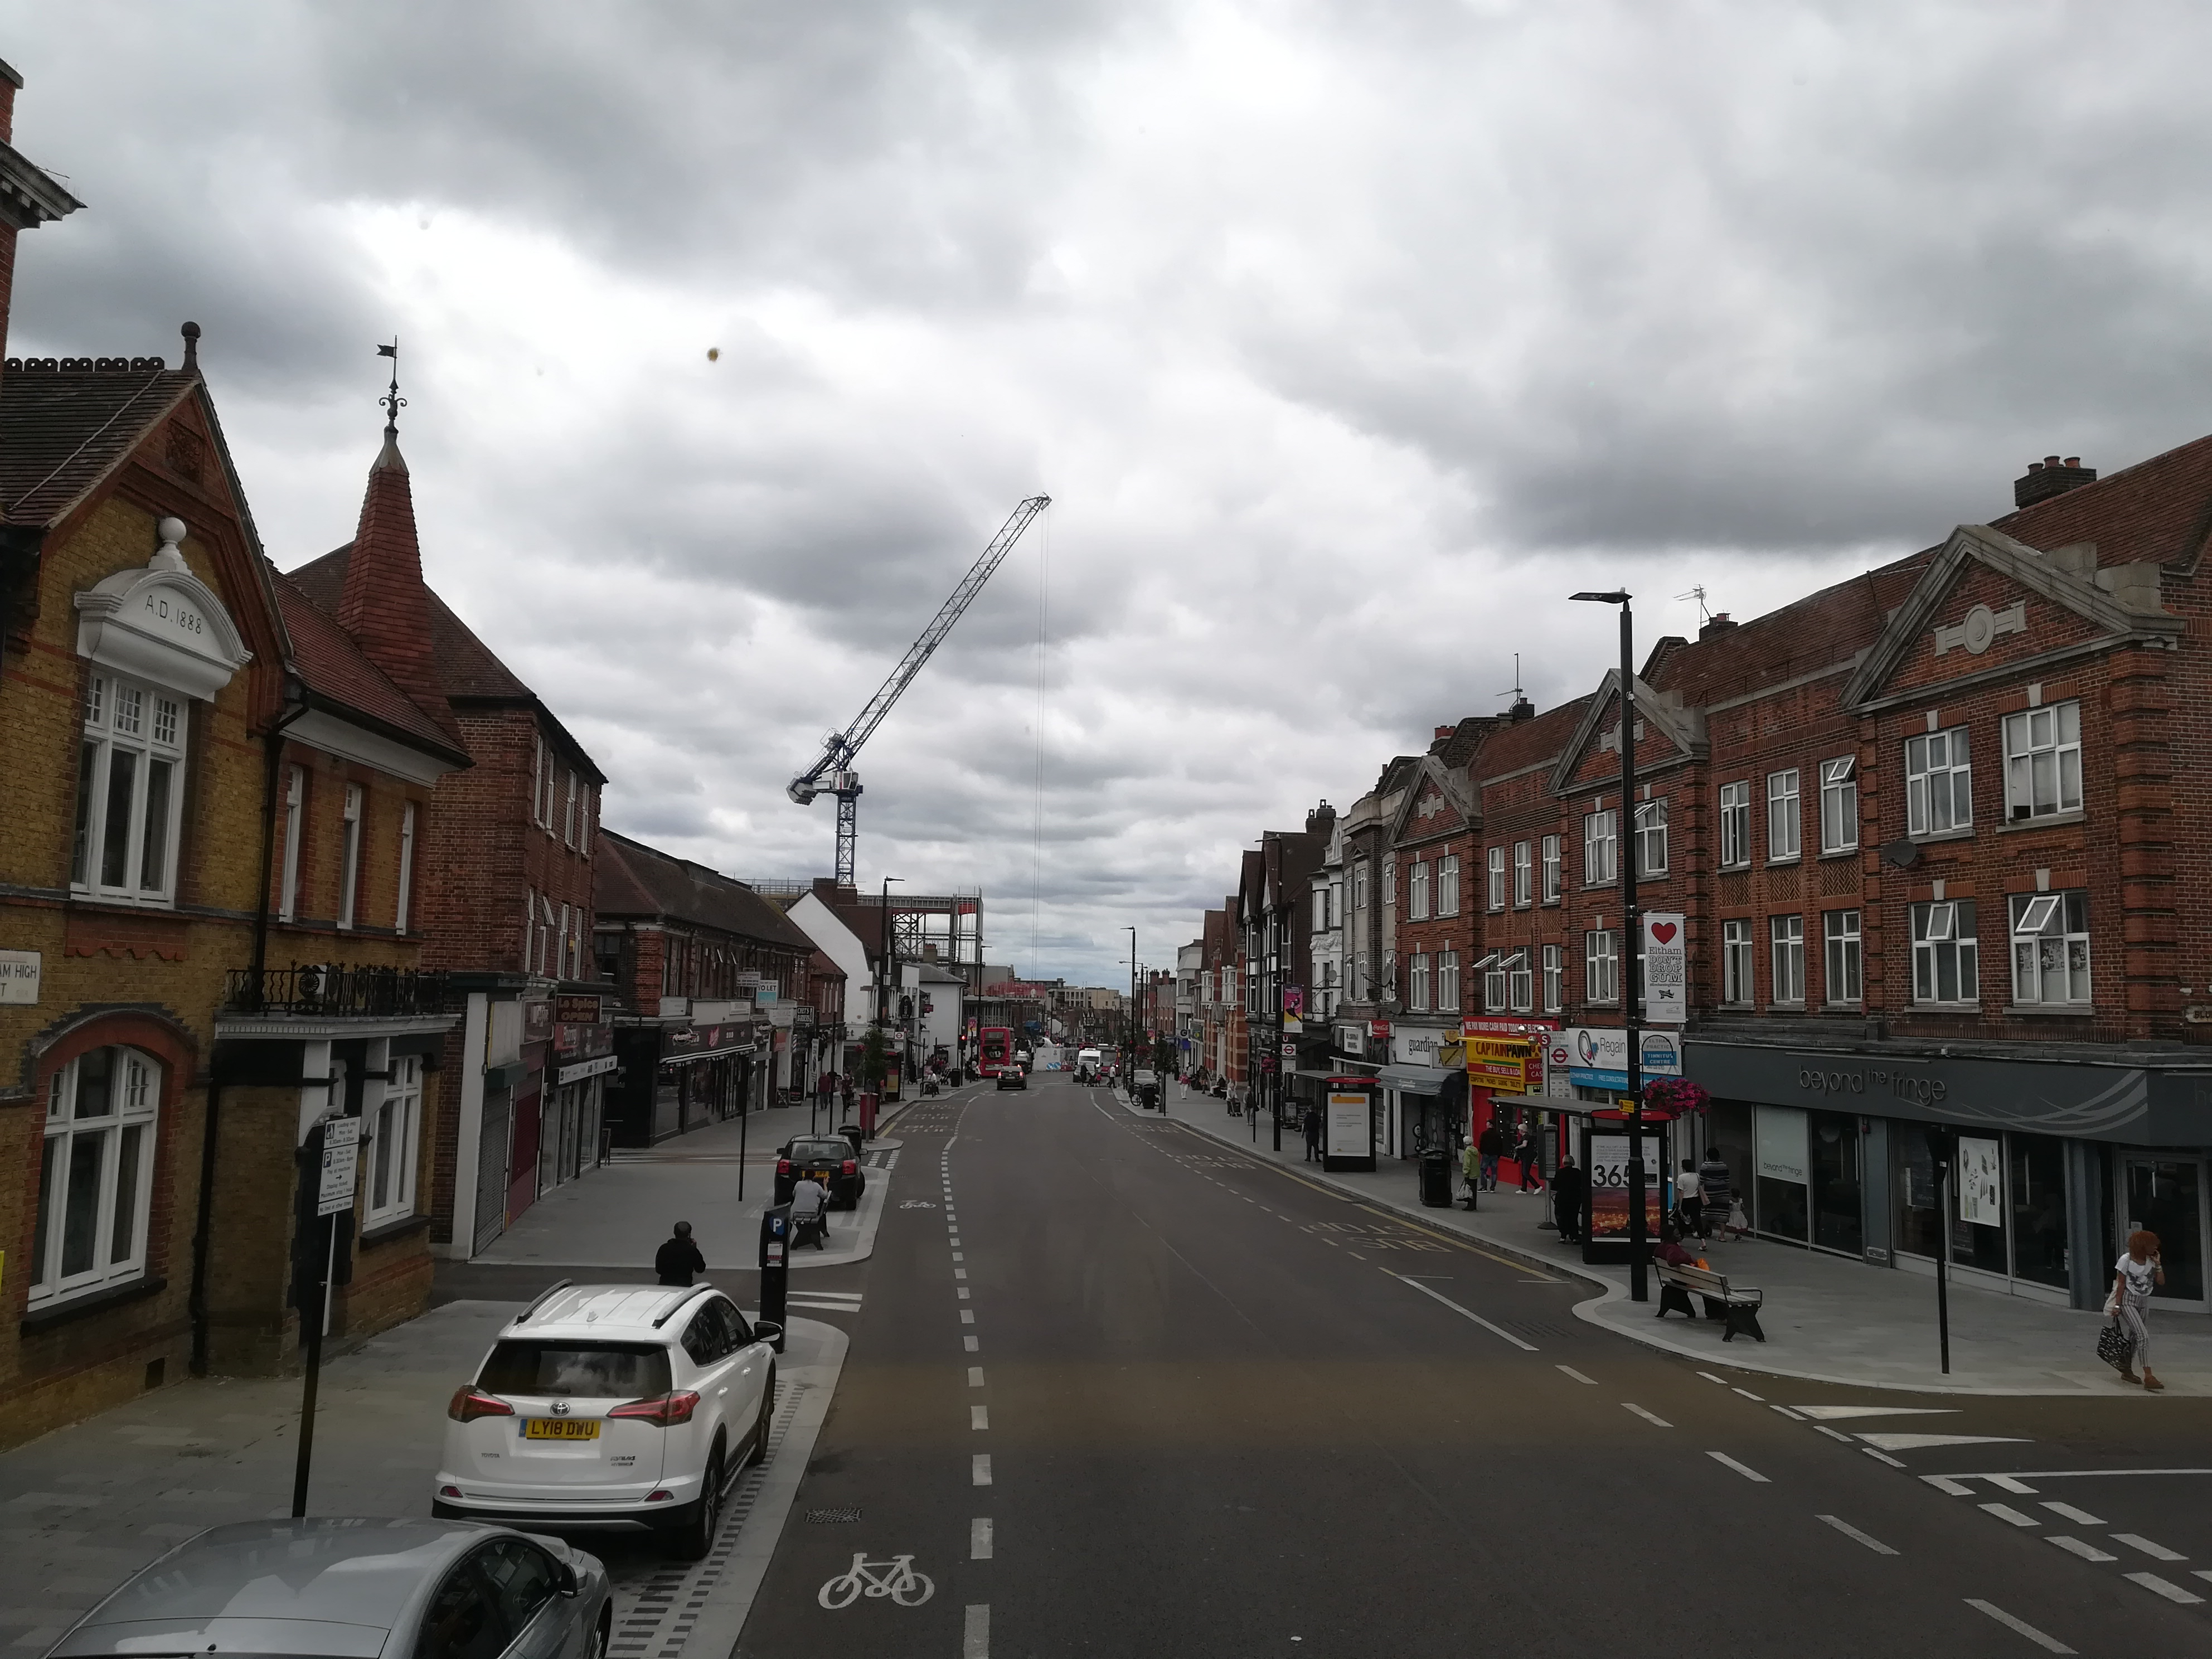 A little look around Eltham as cinema progress continues